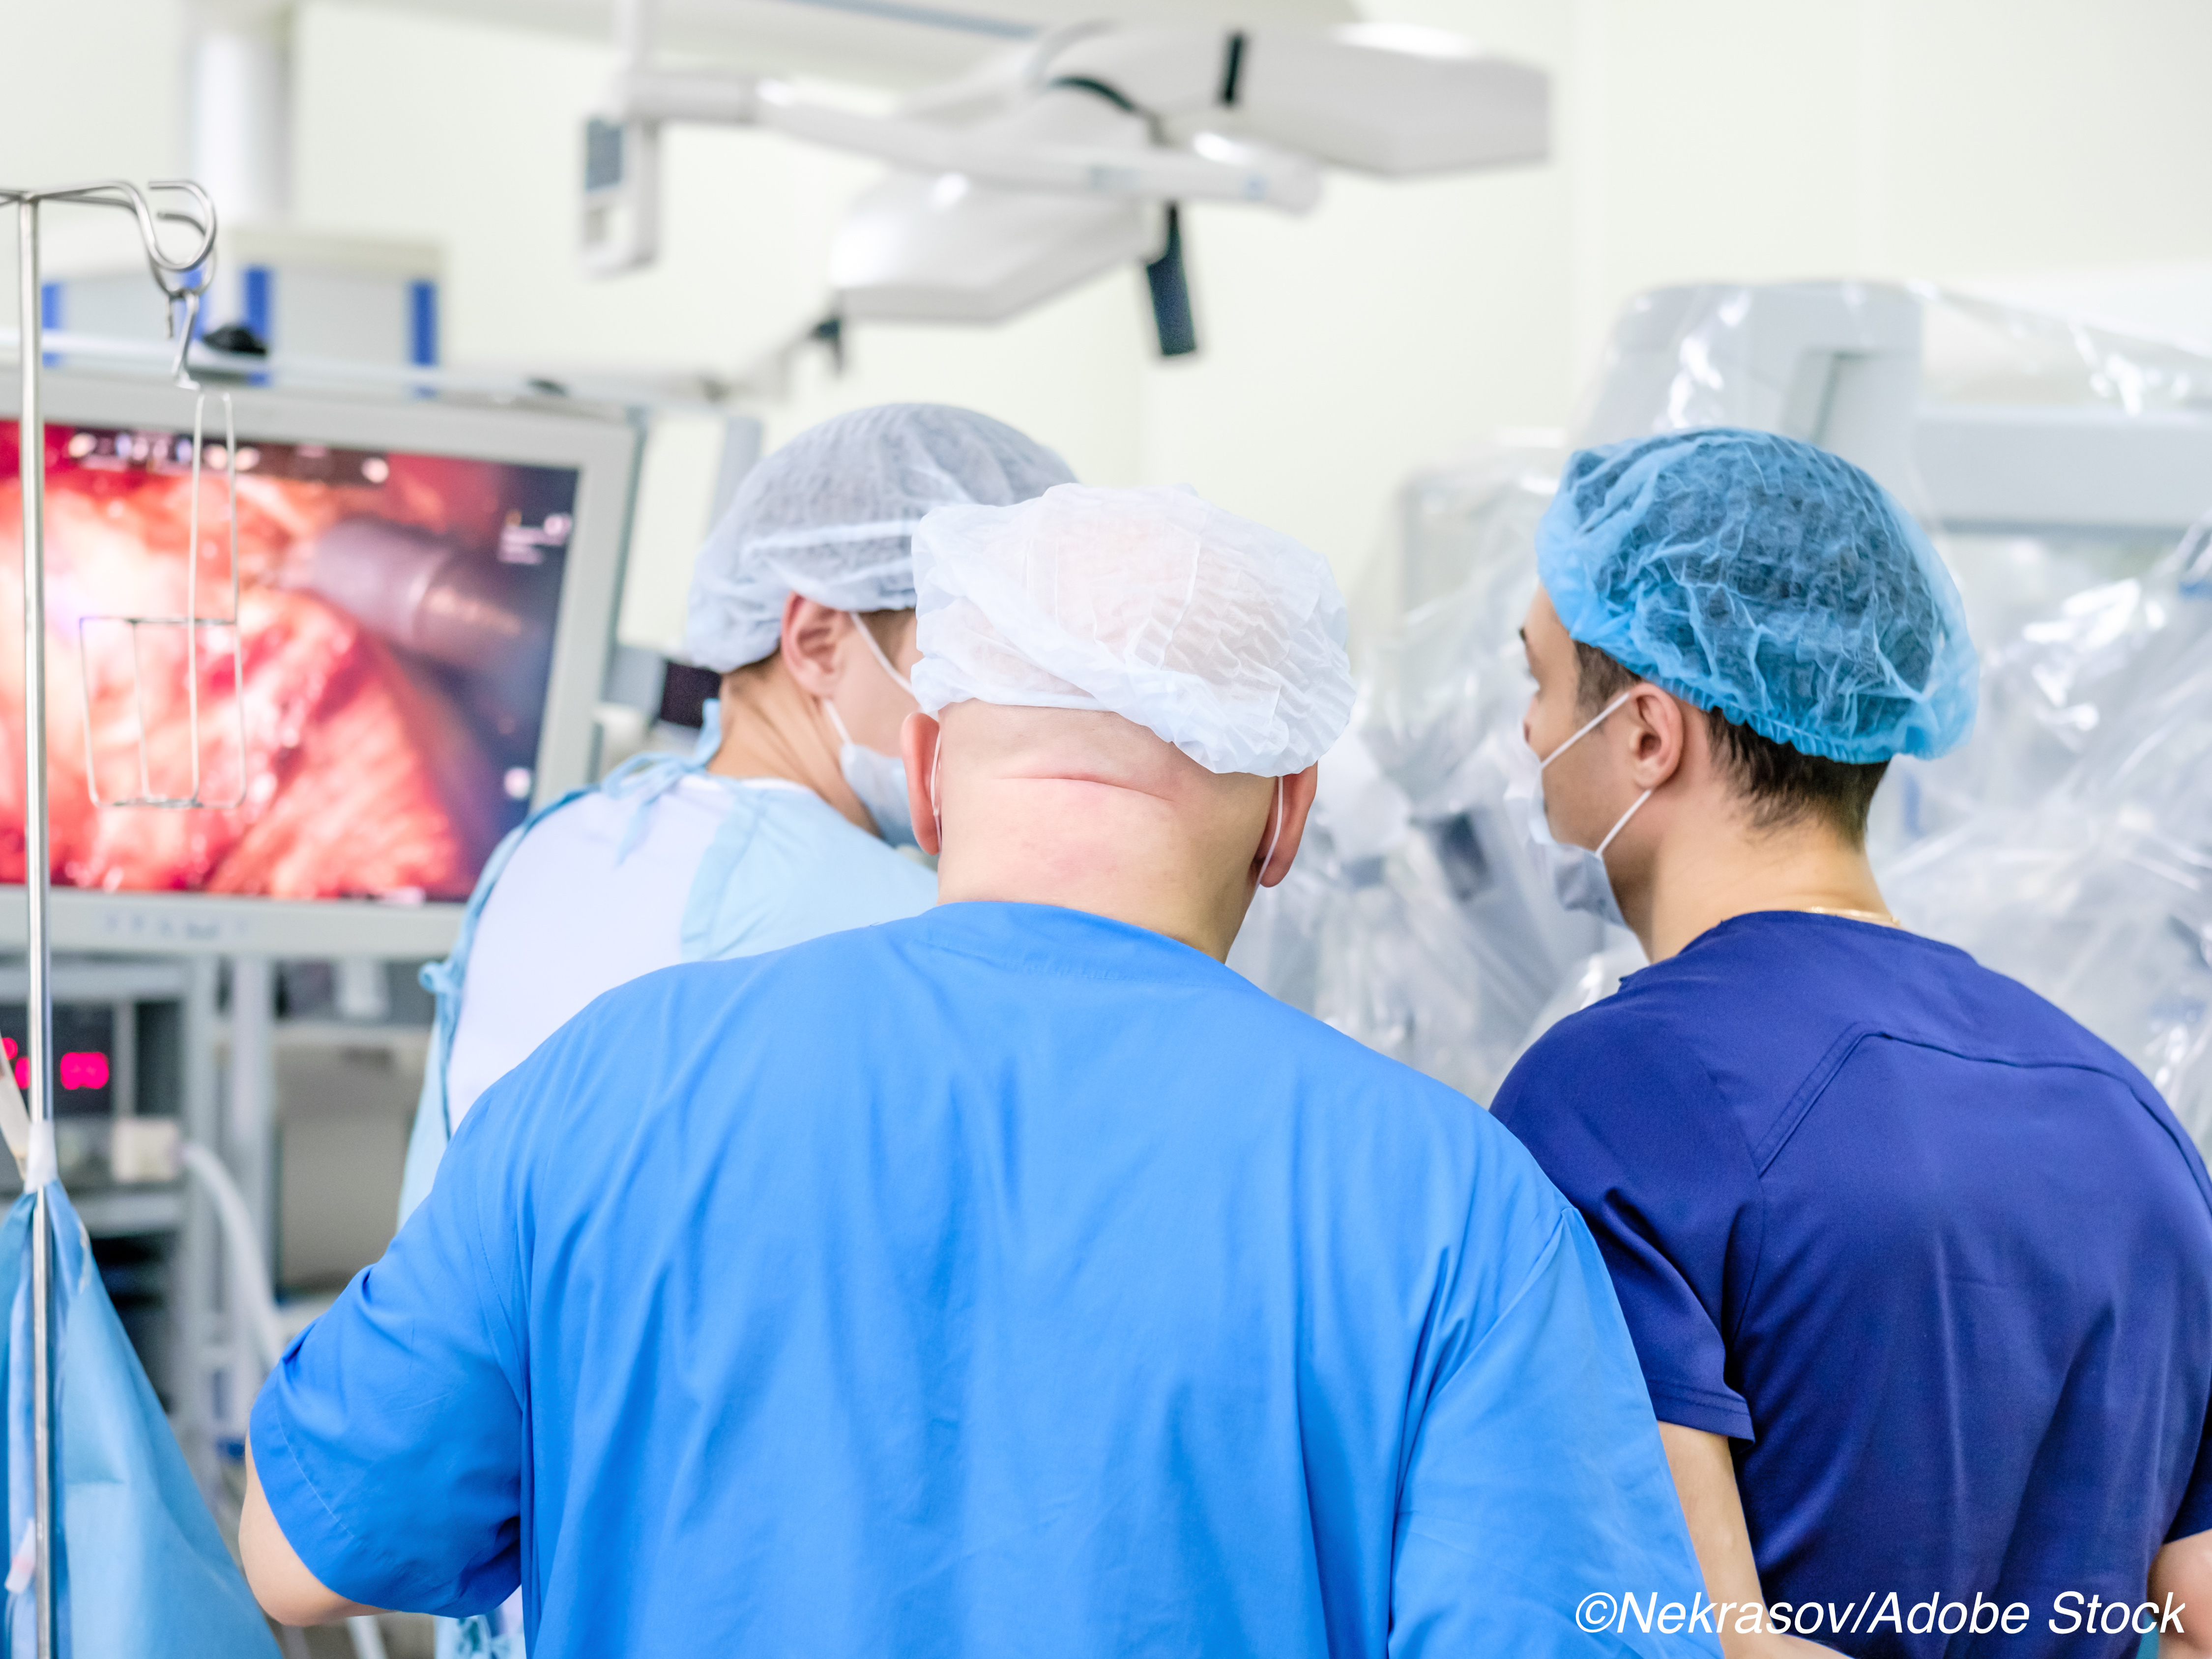 Bariatric Surgery Lowers Risk of Death from Heart Disease or Cancer